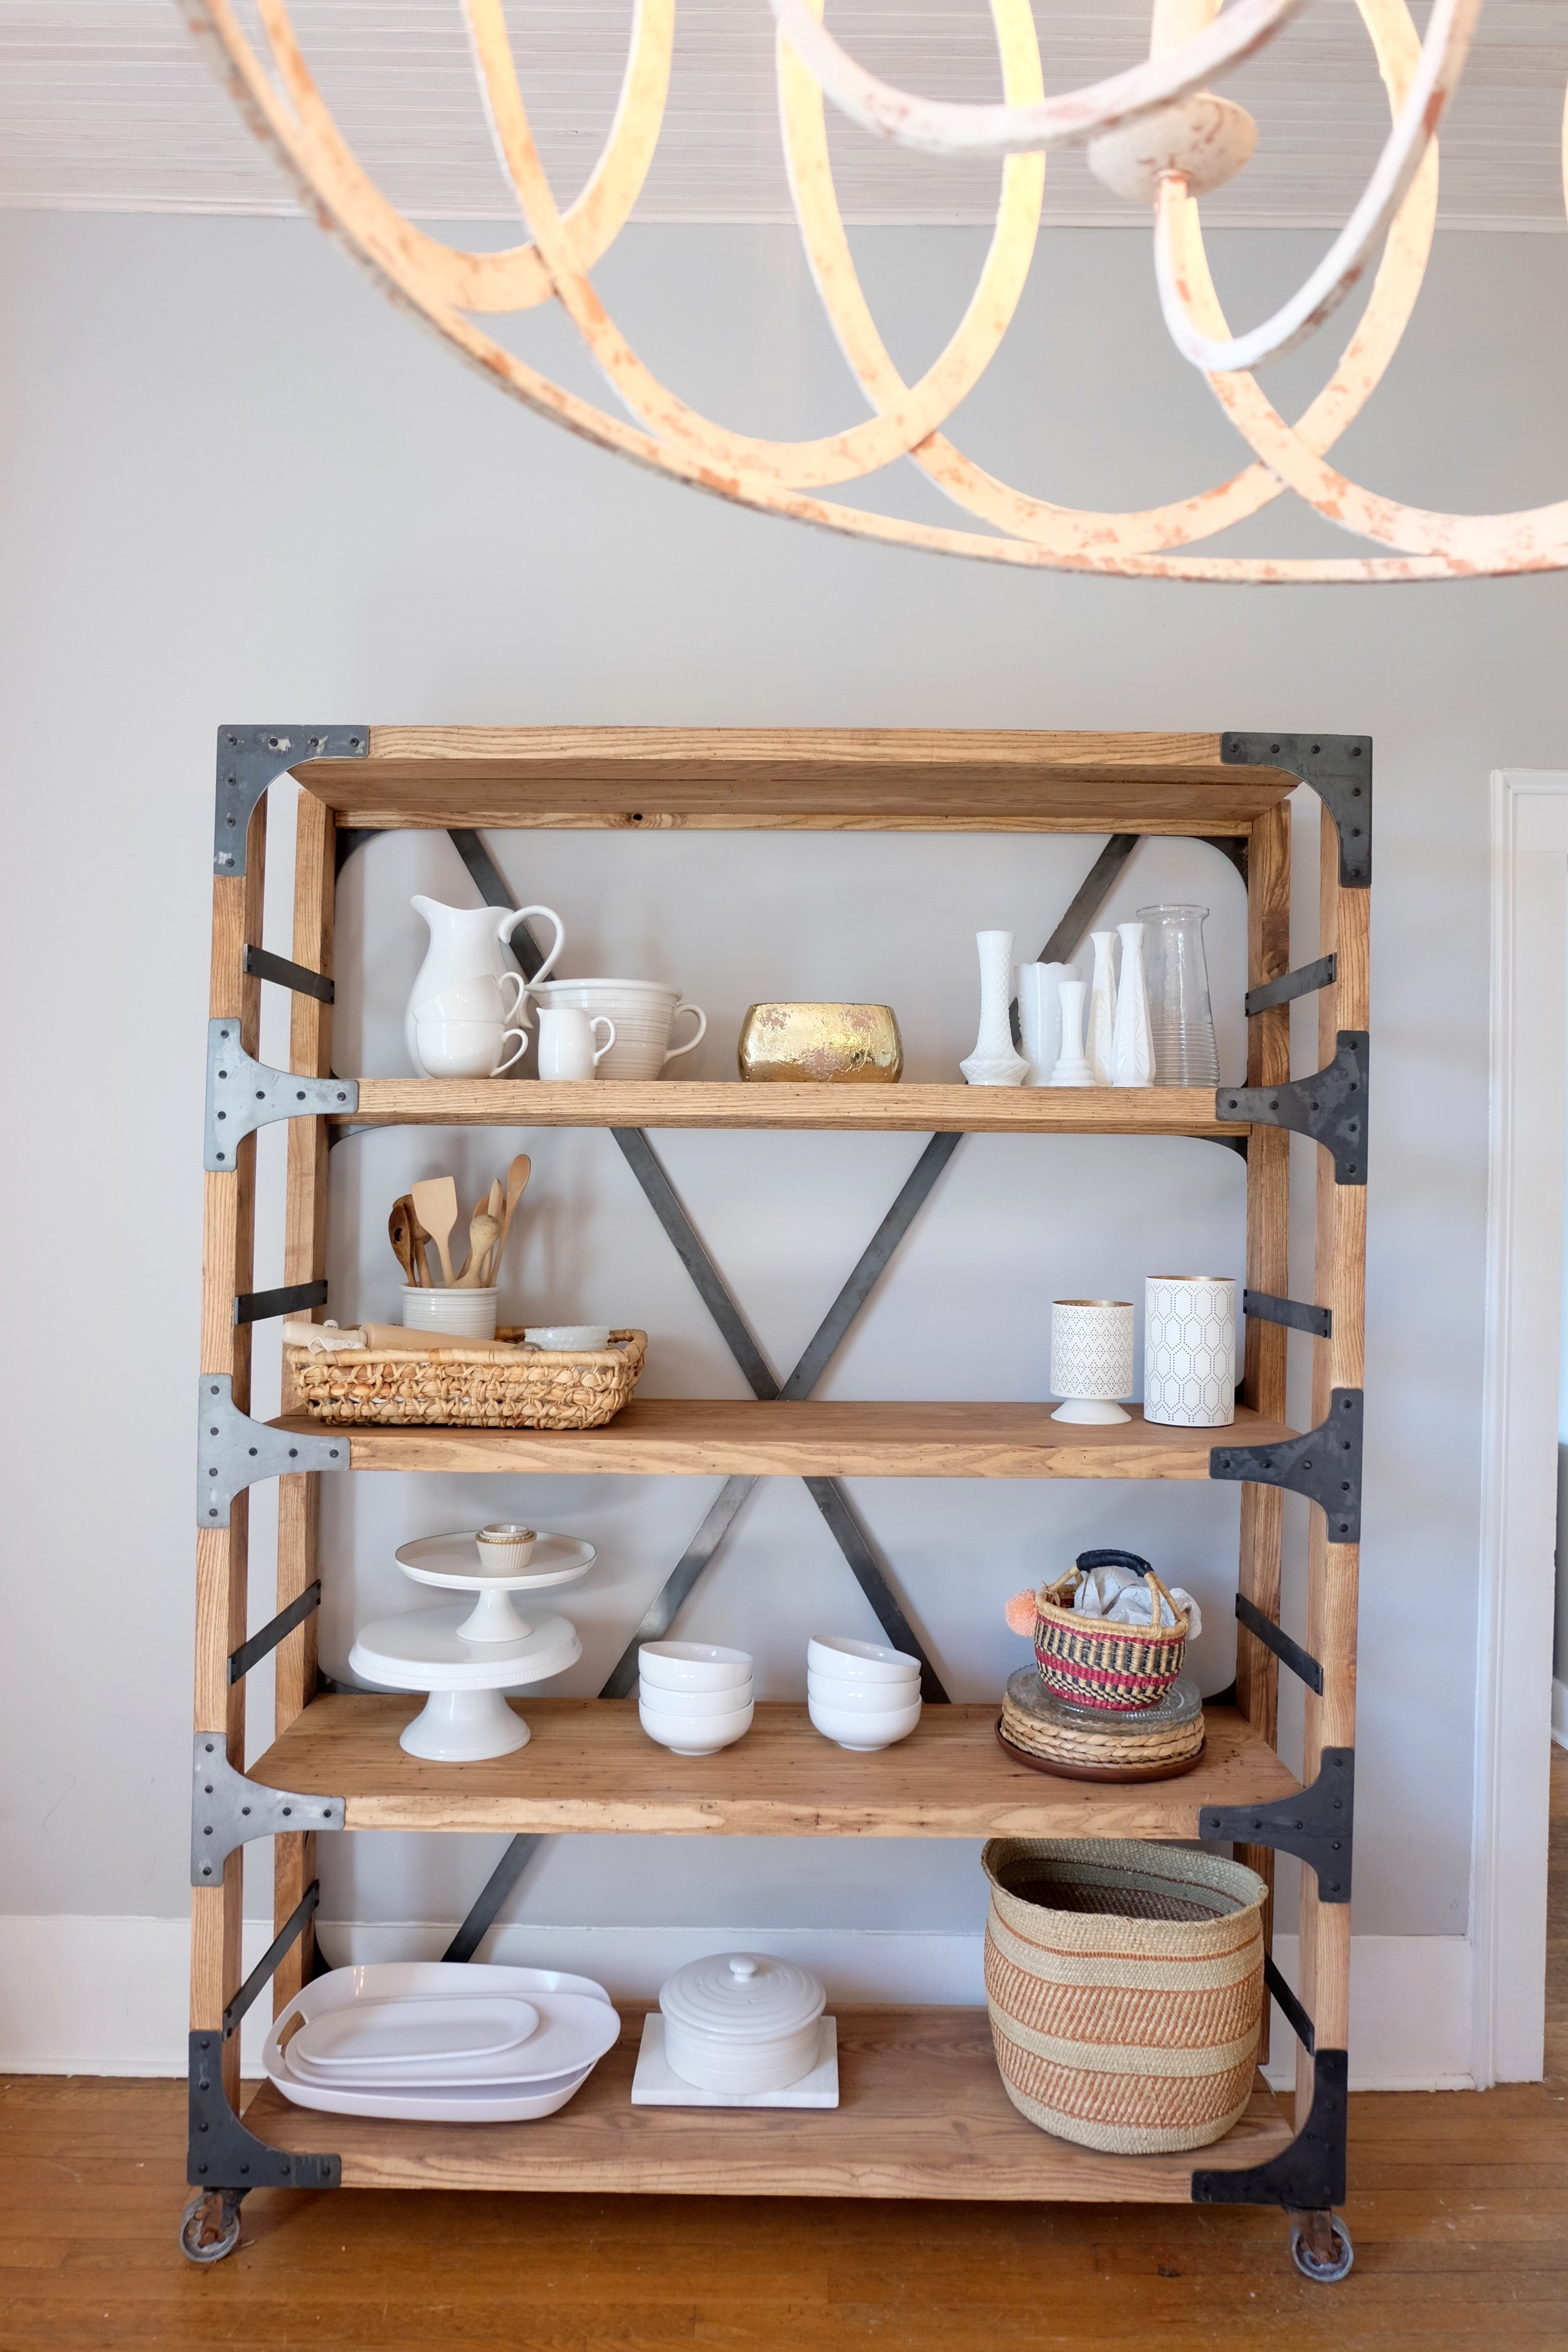 I love how it adapts to any space. You can style it any way you want to fit your home. This is my go to shelf so I use these pieces a lot. It works out great for storage and beautifully built!!